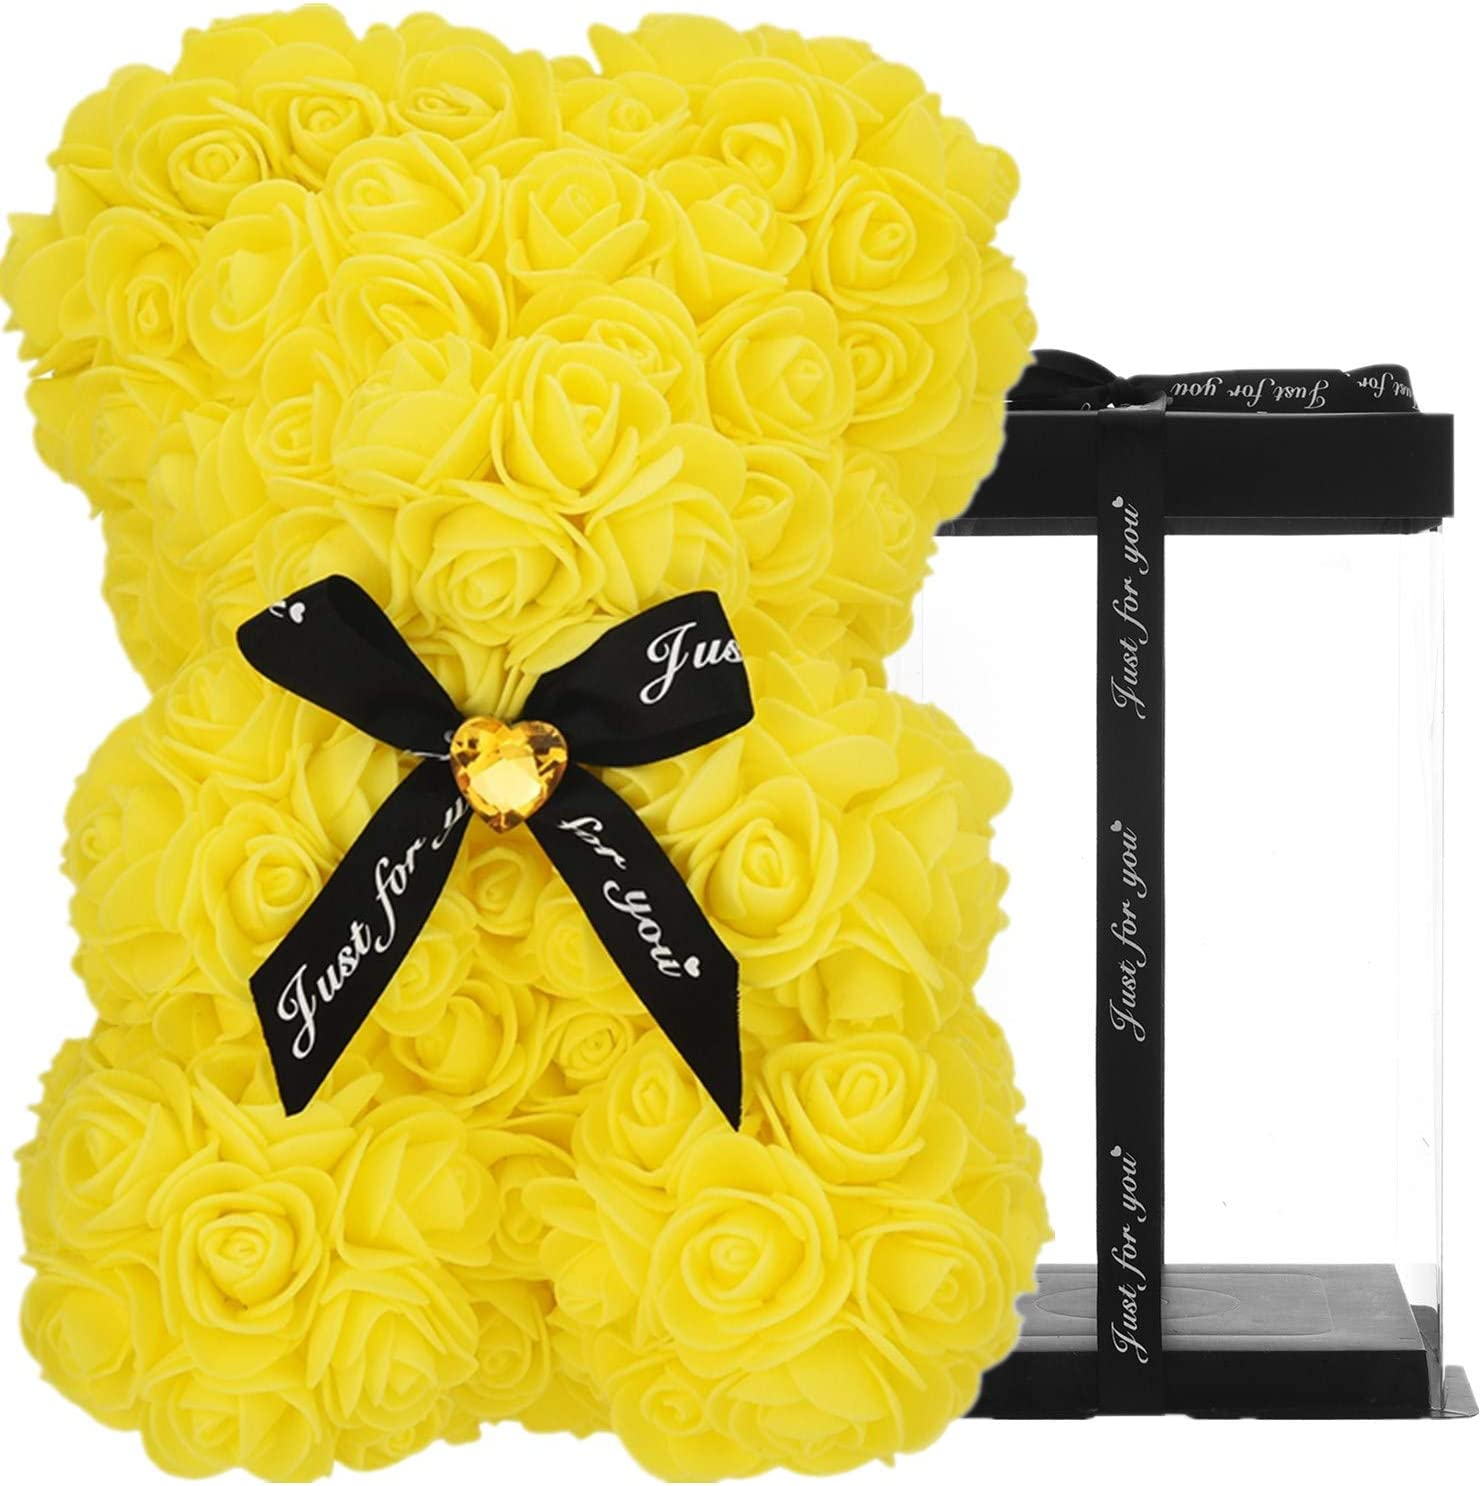 ZLJ Rose Bear, Rose Teddy Bear, 10 Inches Tall - Over 250+ Flowers on Every Rose Flower Bear, Perfect for Anniversary's, Birthdays, Bridal Showers, Mother's Day - 10 inch Clear Gift Box - Yellow